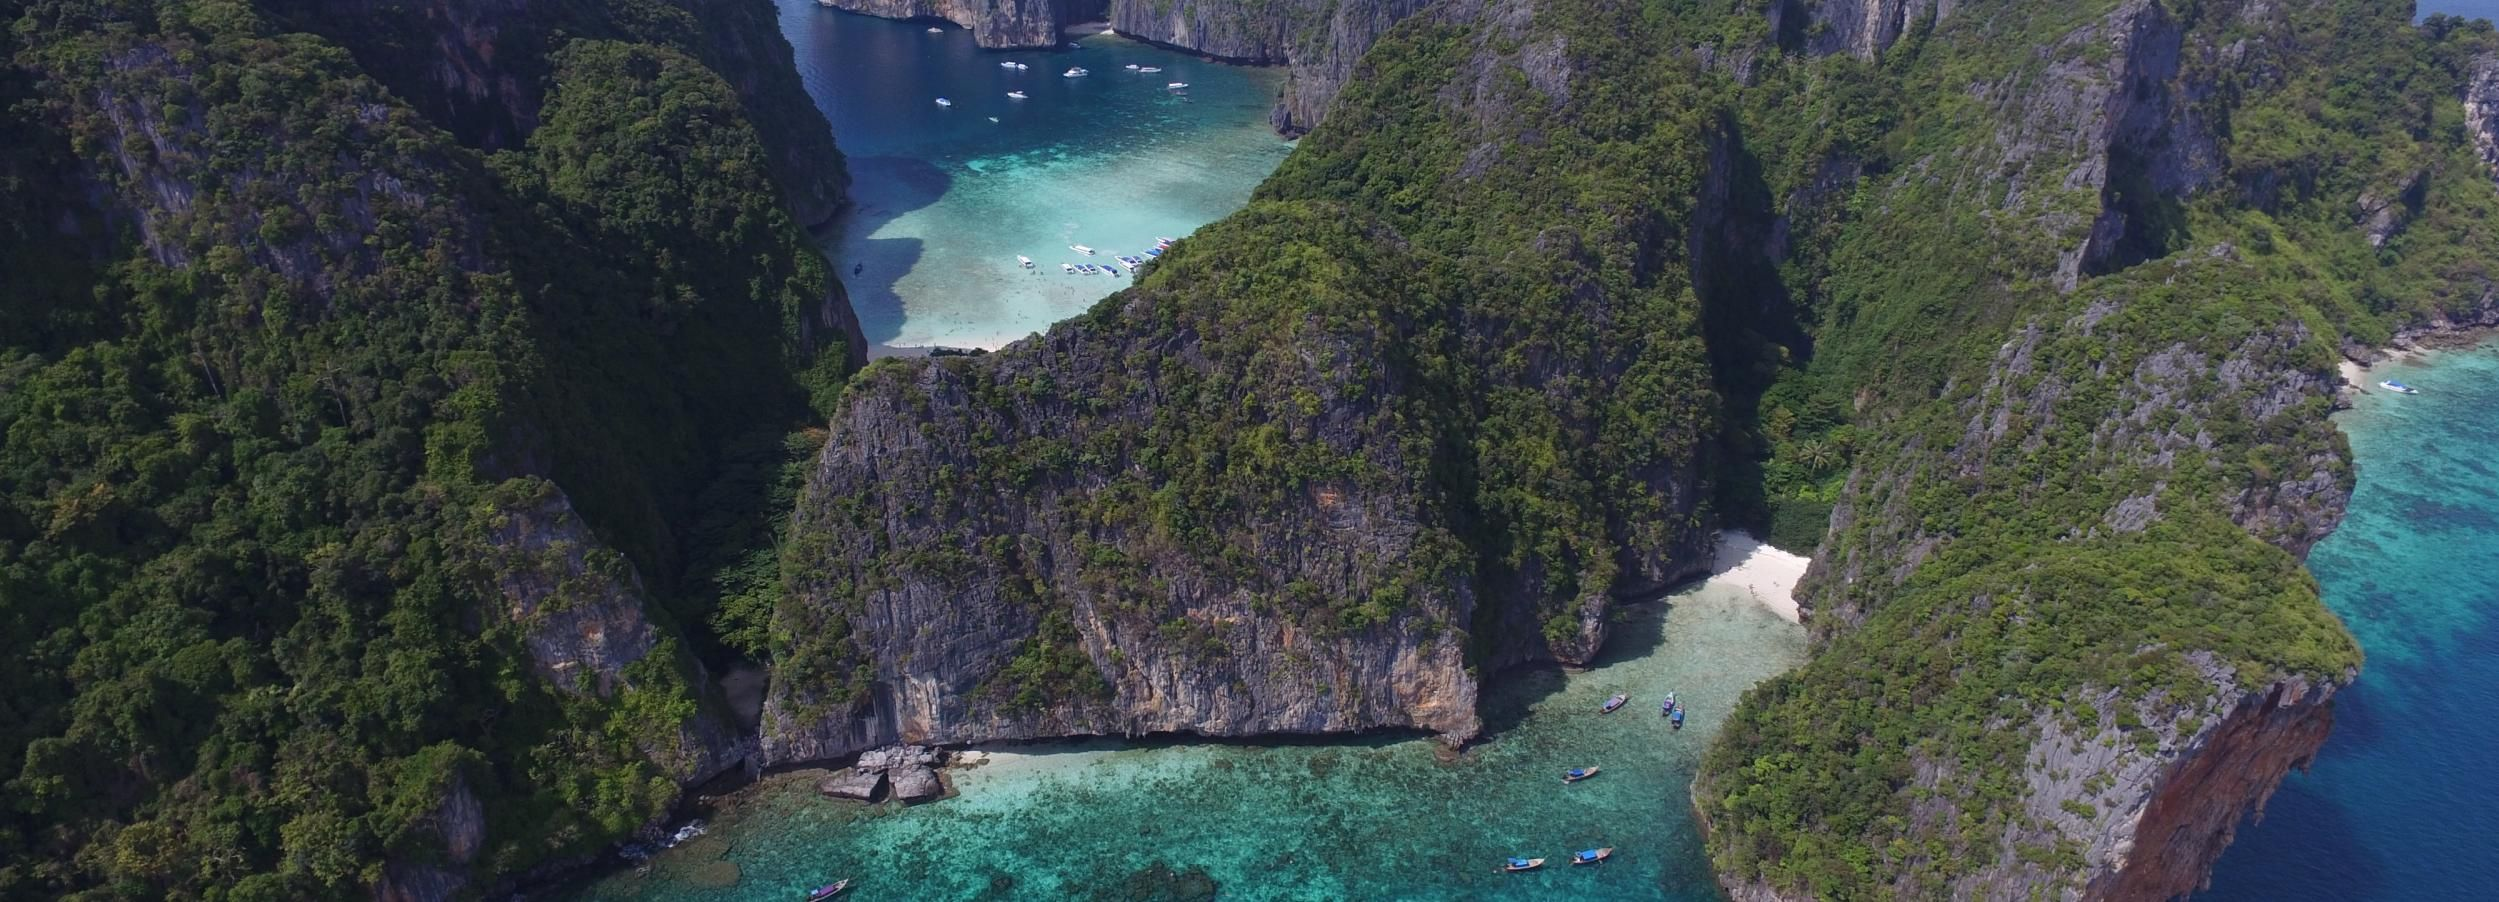 Da Krabi: tour per piccoli gruppi di Phi Phi Islands